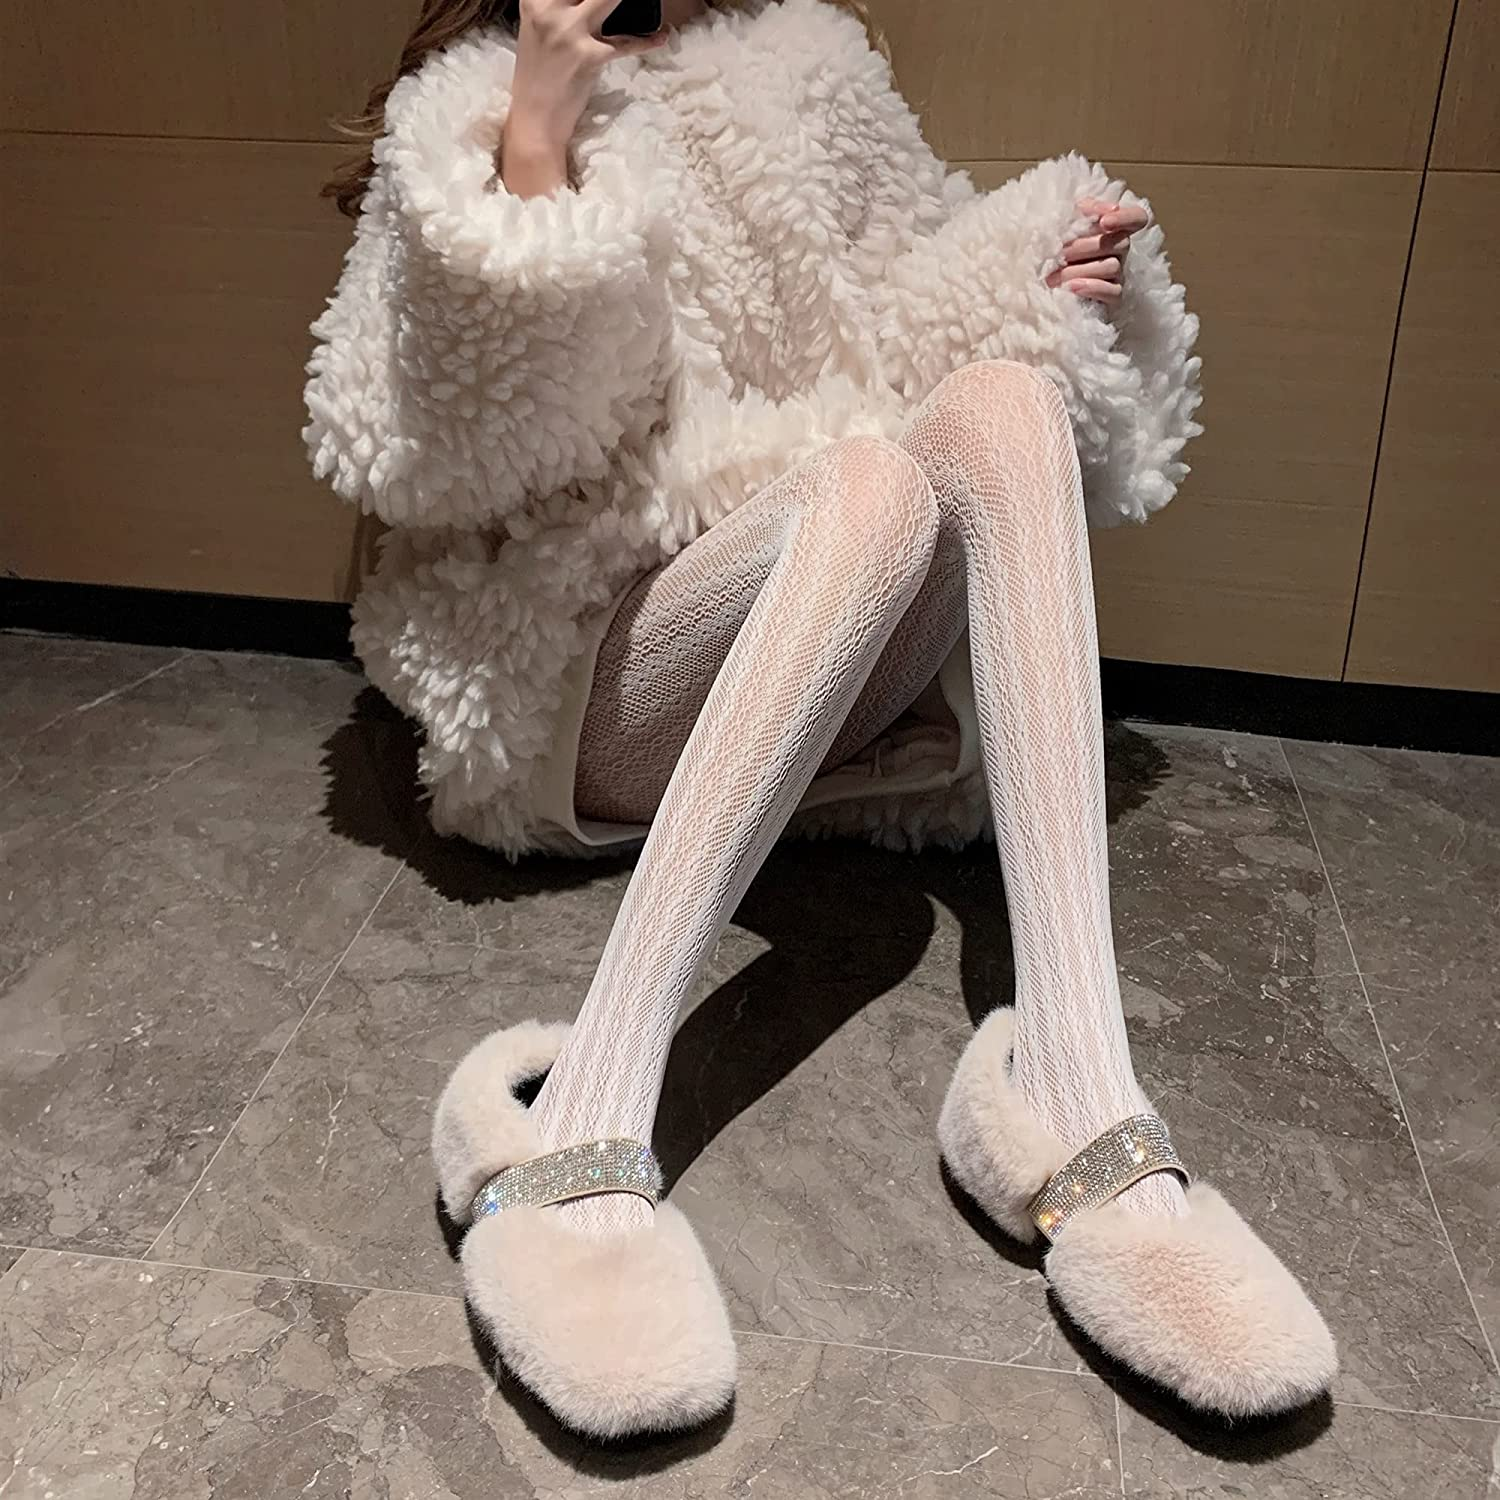 Scnque Sexy Fishnet Stockings Wear Leggings Tights, Lace Beautiful Leg Socks, Pantyhose for Teenagers (Color : White, Size : One Size)